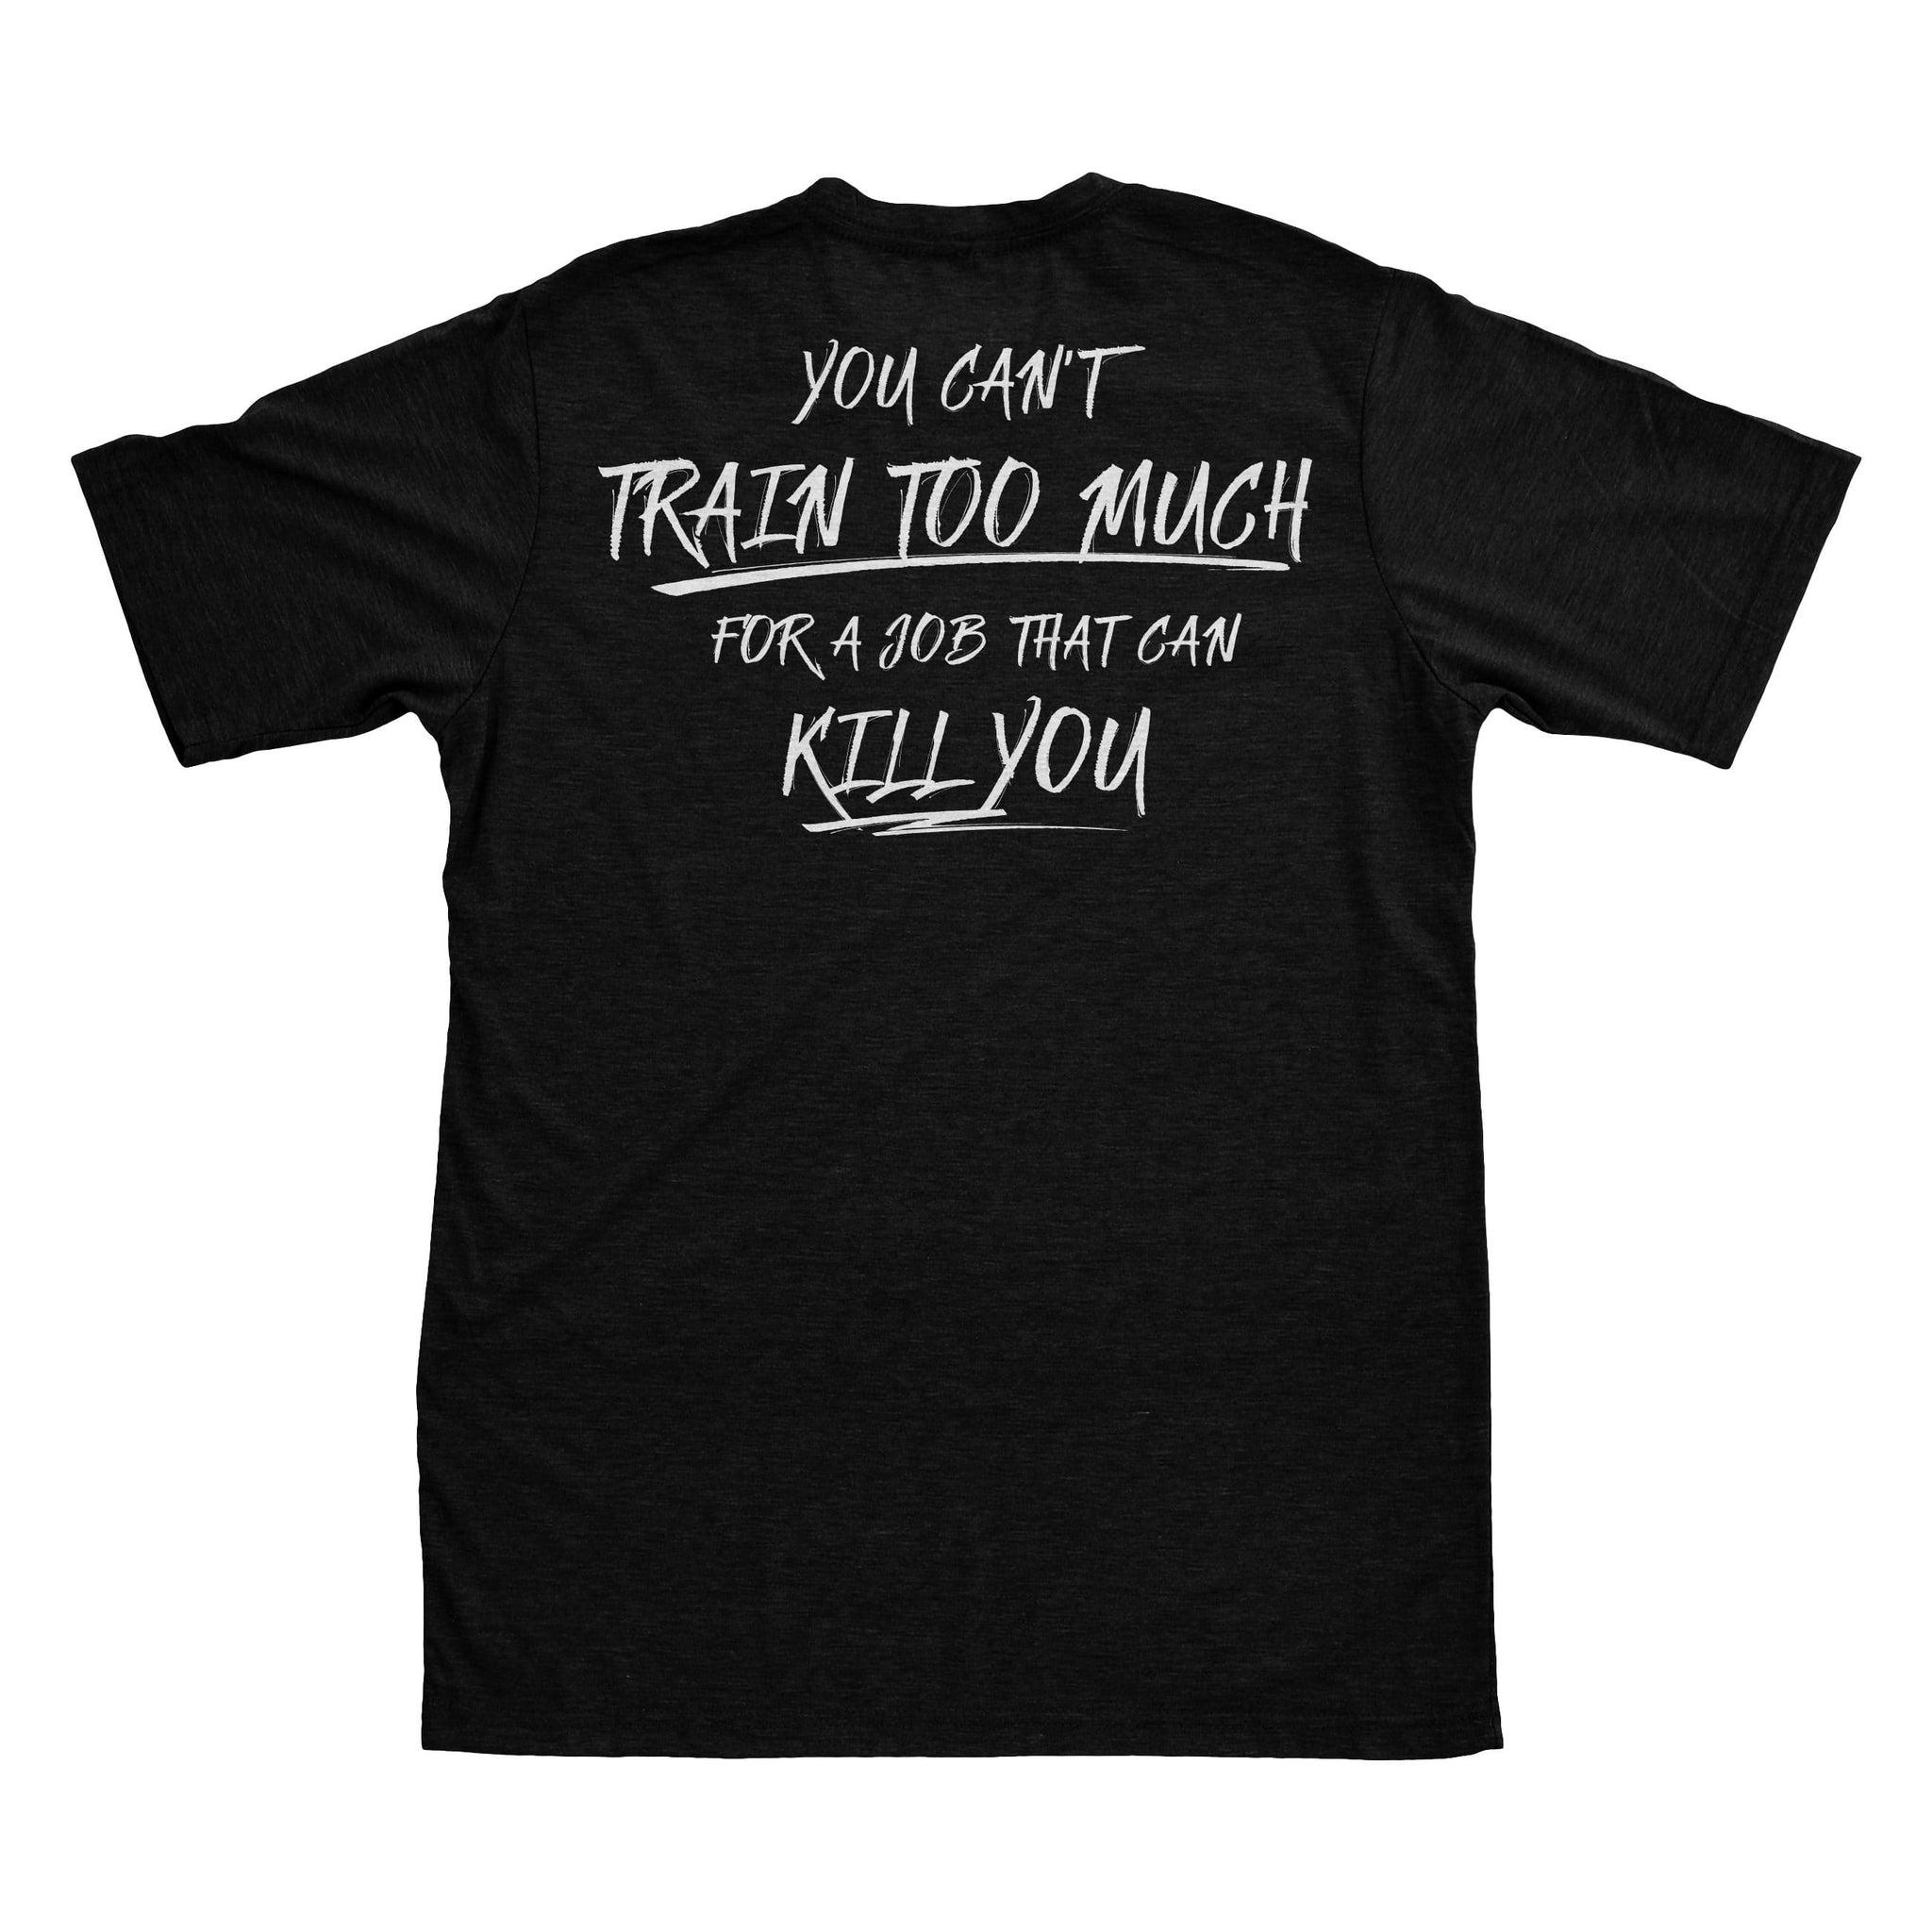 You Can't Train Too Much - Black - T-Shirts - Pipe Hitters Union